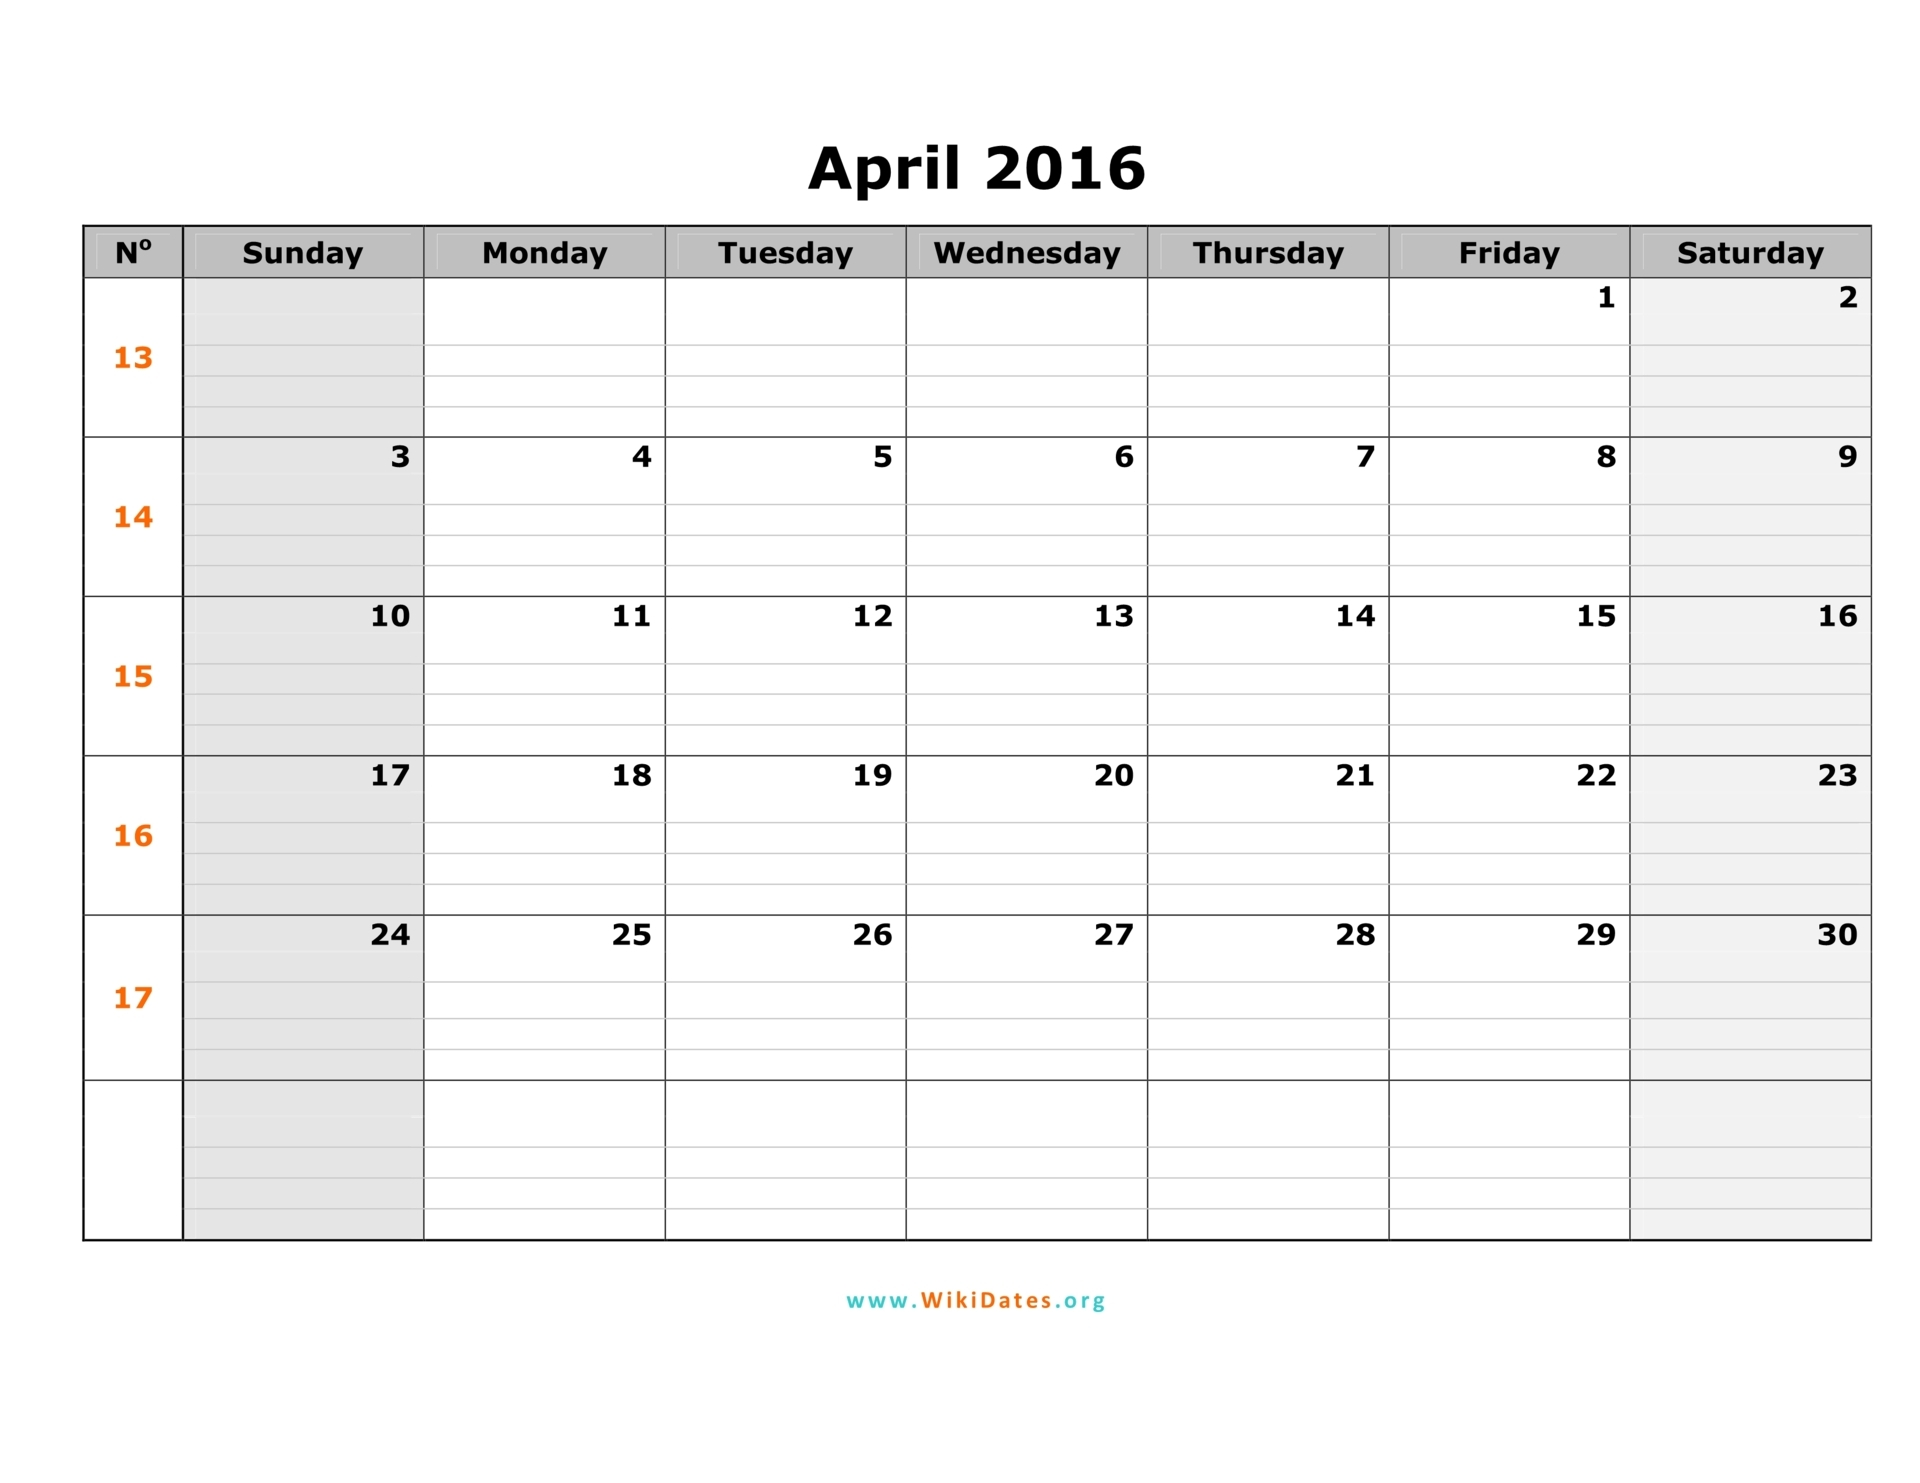 Forex association of india calendar 2016